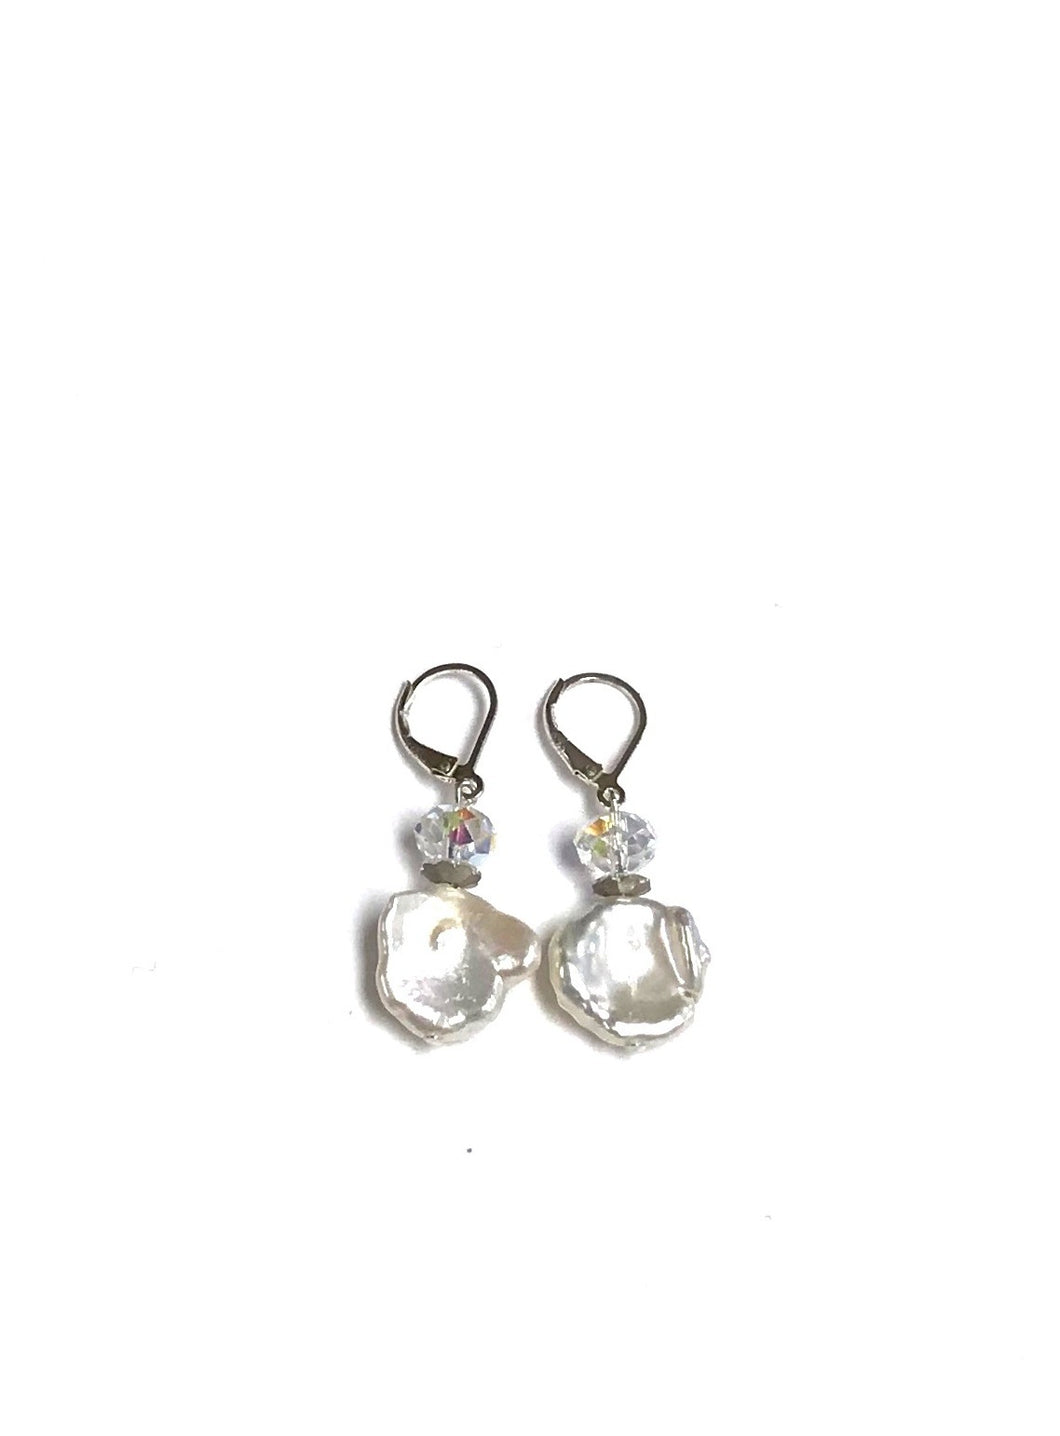 Freshwater Pearl Earrings!